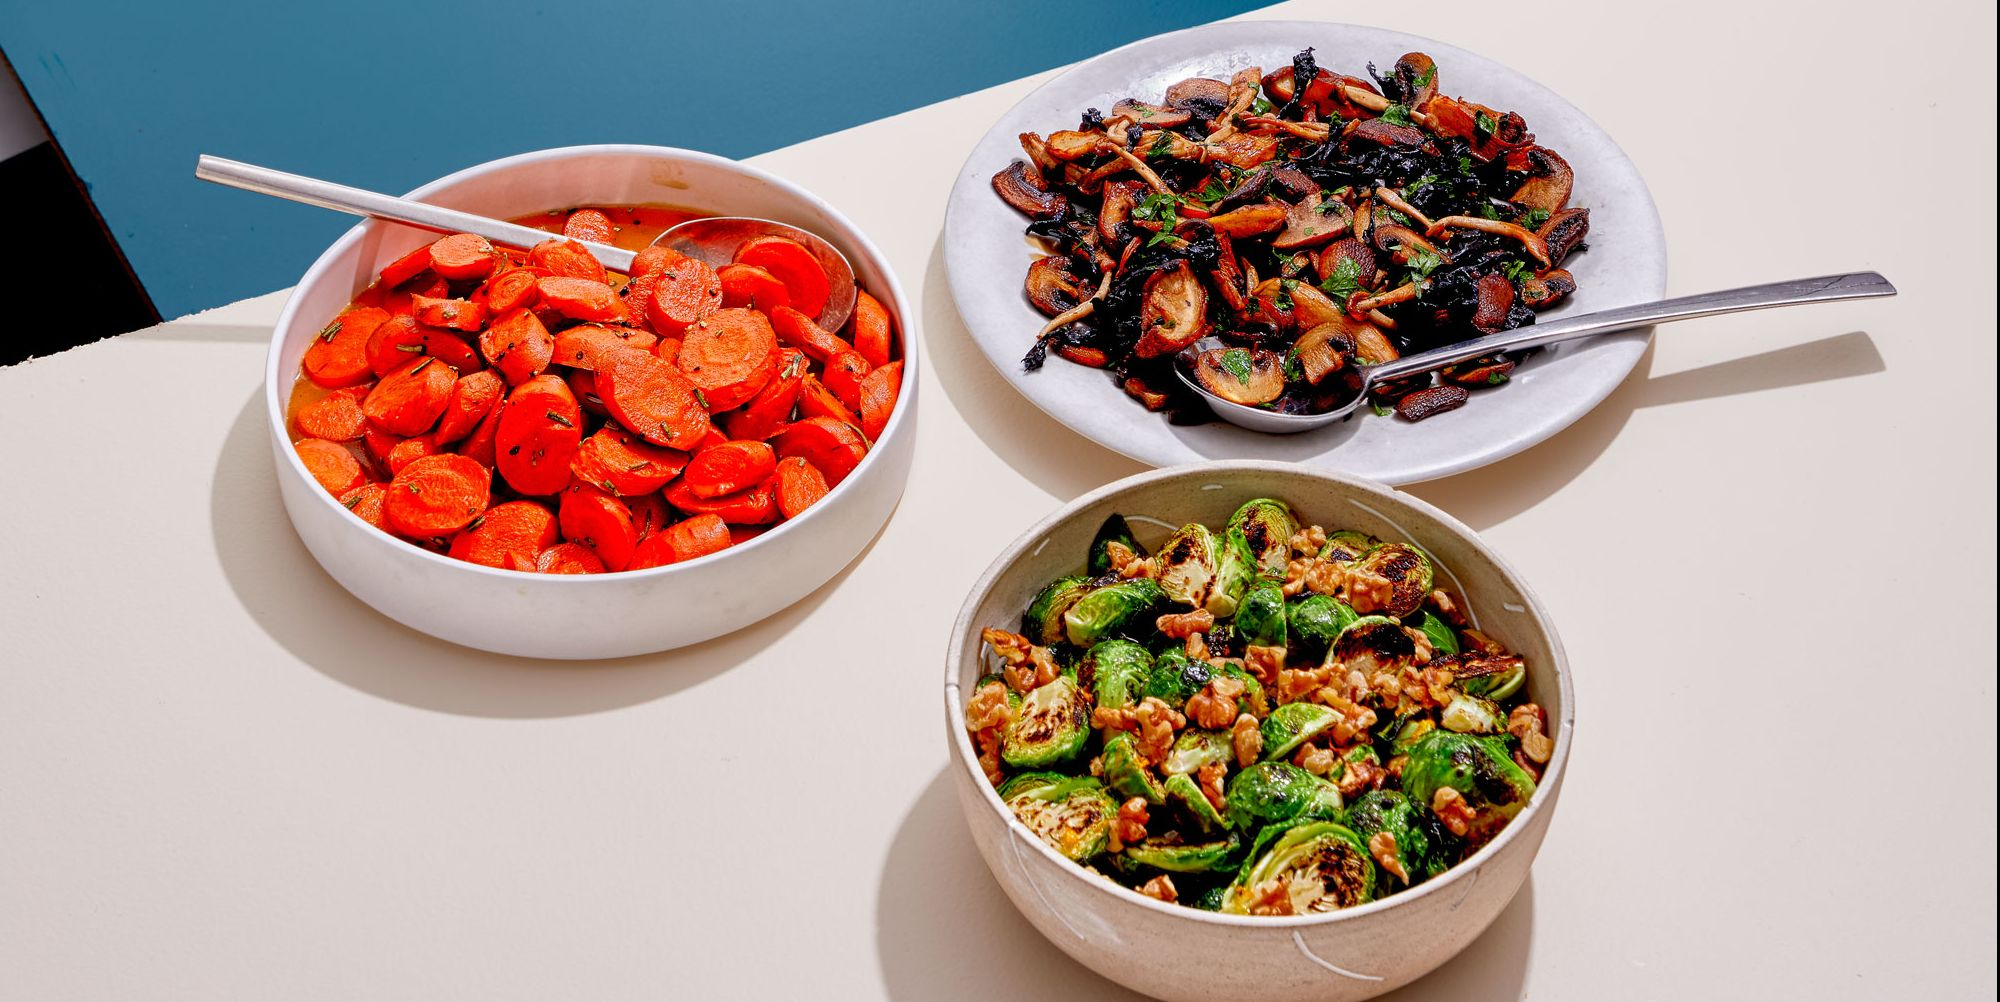 3 Thanksgiving Side Dishes That Are Easy, Healthy, and Delicious